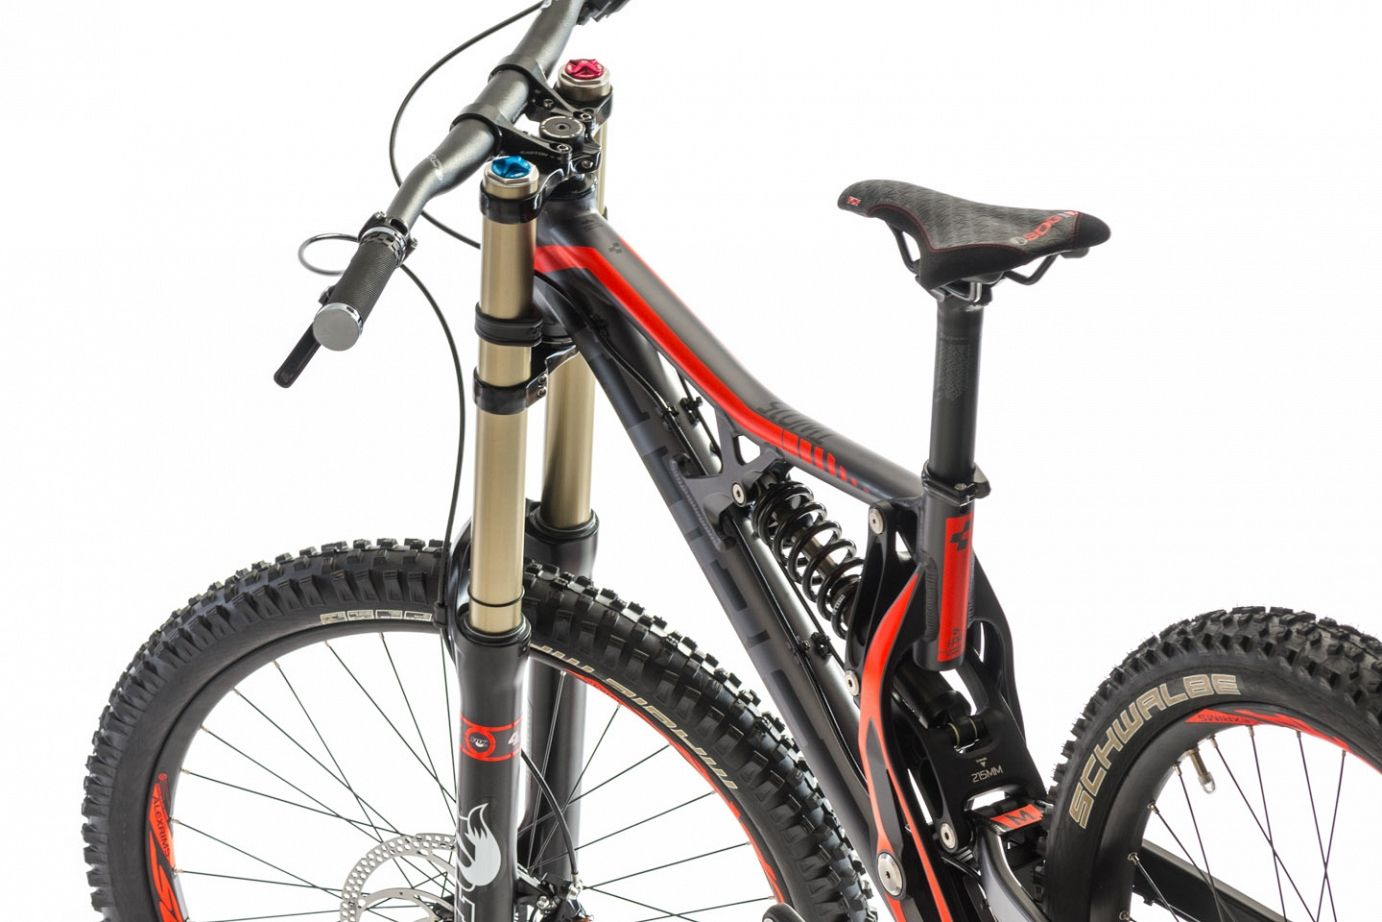 cube two 15 pro 26 2014 review the bike list Chain Guide Mountain Bike Asheville NC Mountain Bike Guides